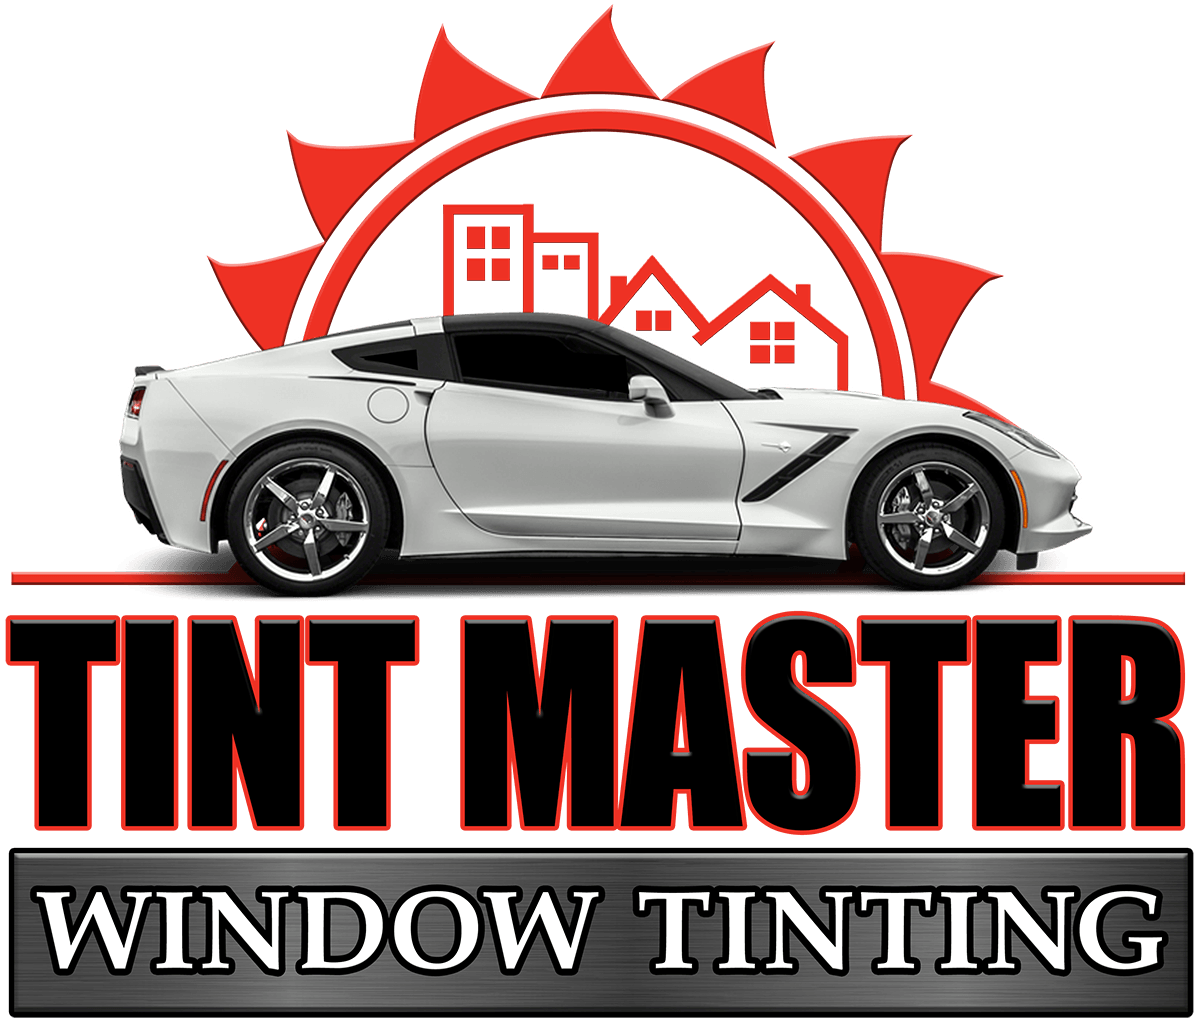 Average Cost Of Window Tinting >> Window Tinting Auto Residential Commercial Tinting